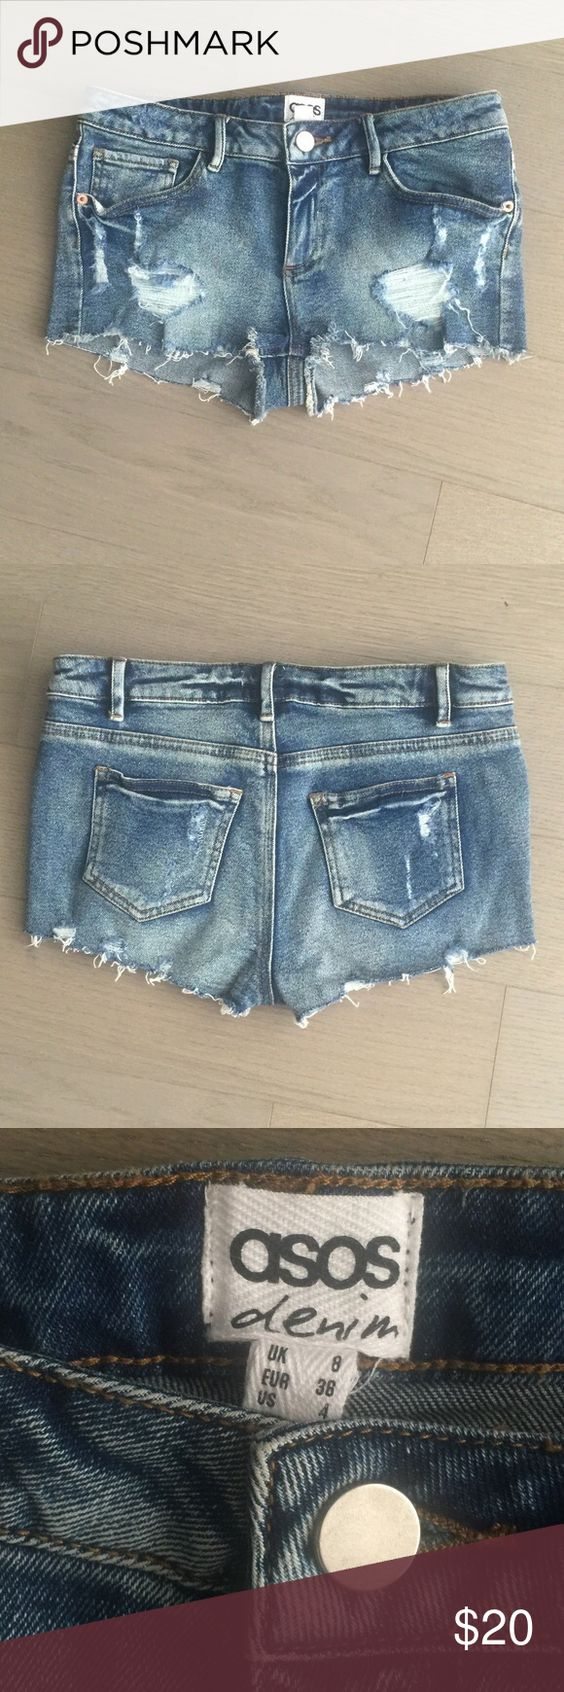 ASOS destroyed low-rise denim cutoff shorts,  blue ASOS size 4 destroyed-look low-rise shorts in faded medium blue color with pockets and zipper and button closure. Excellent summer staple. Asos Shorts Jean Shorts